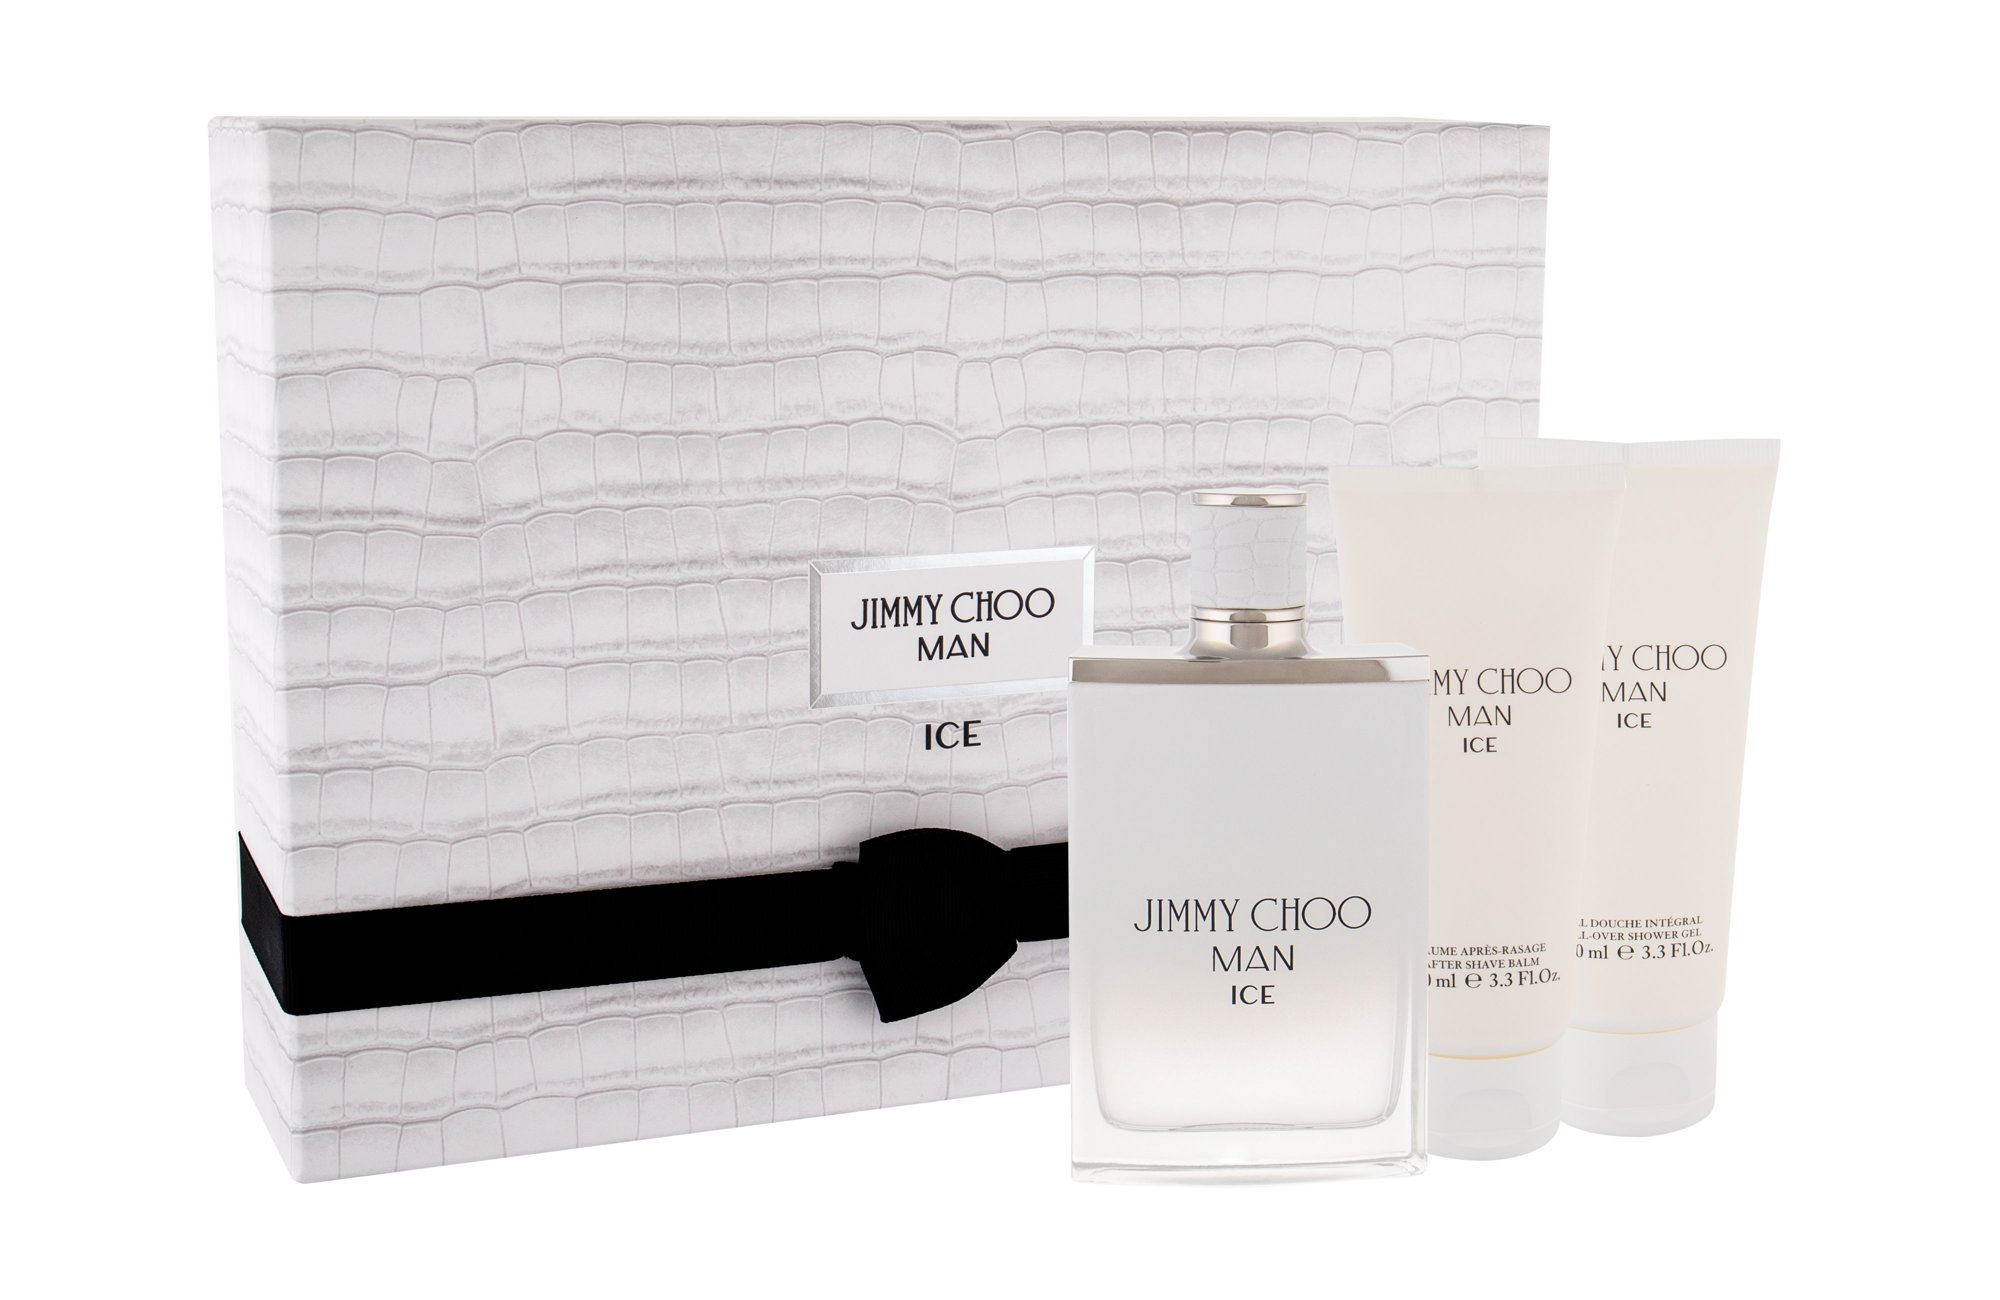 Jimmy Choo Jimmy Choo Man Ice Eau de Toilette 100ml